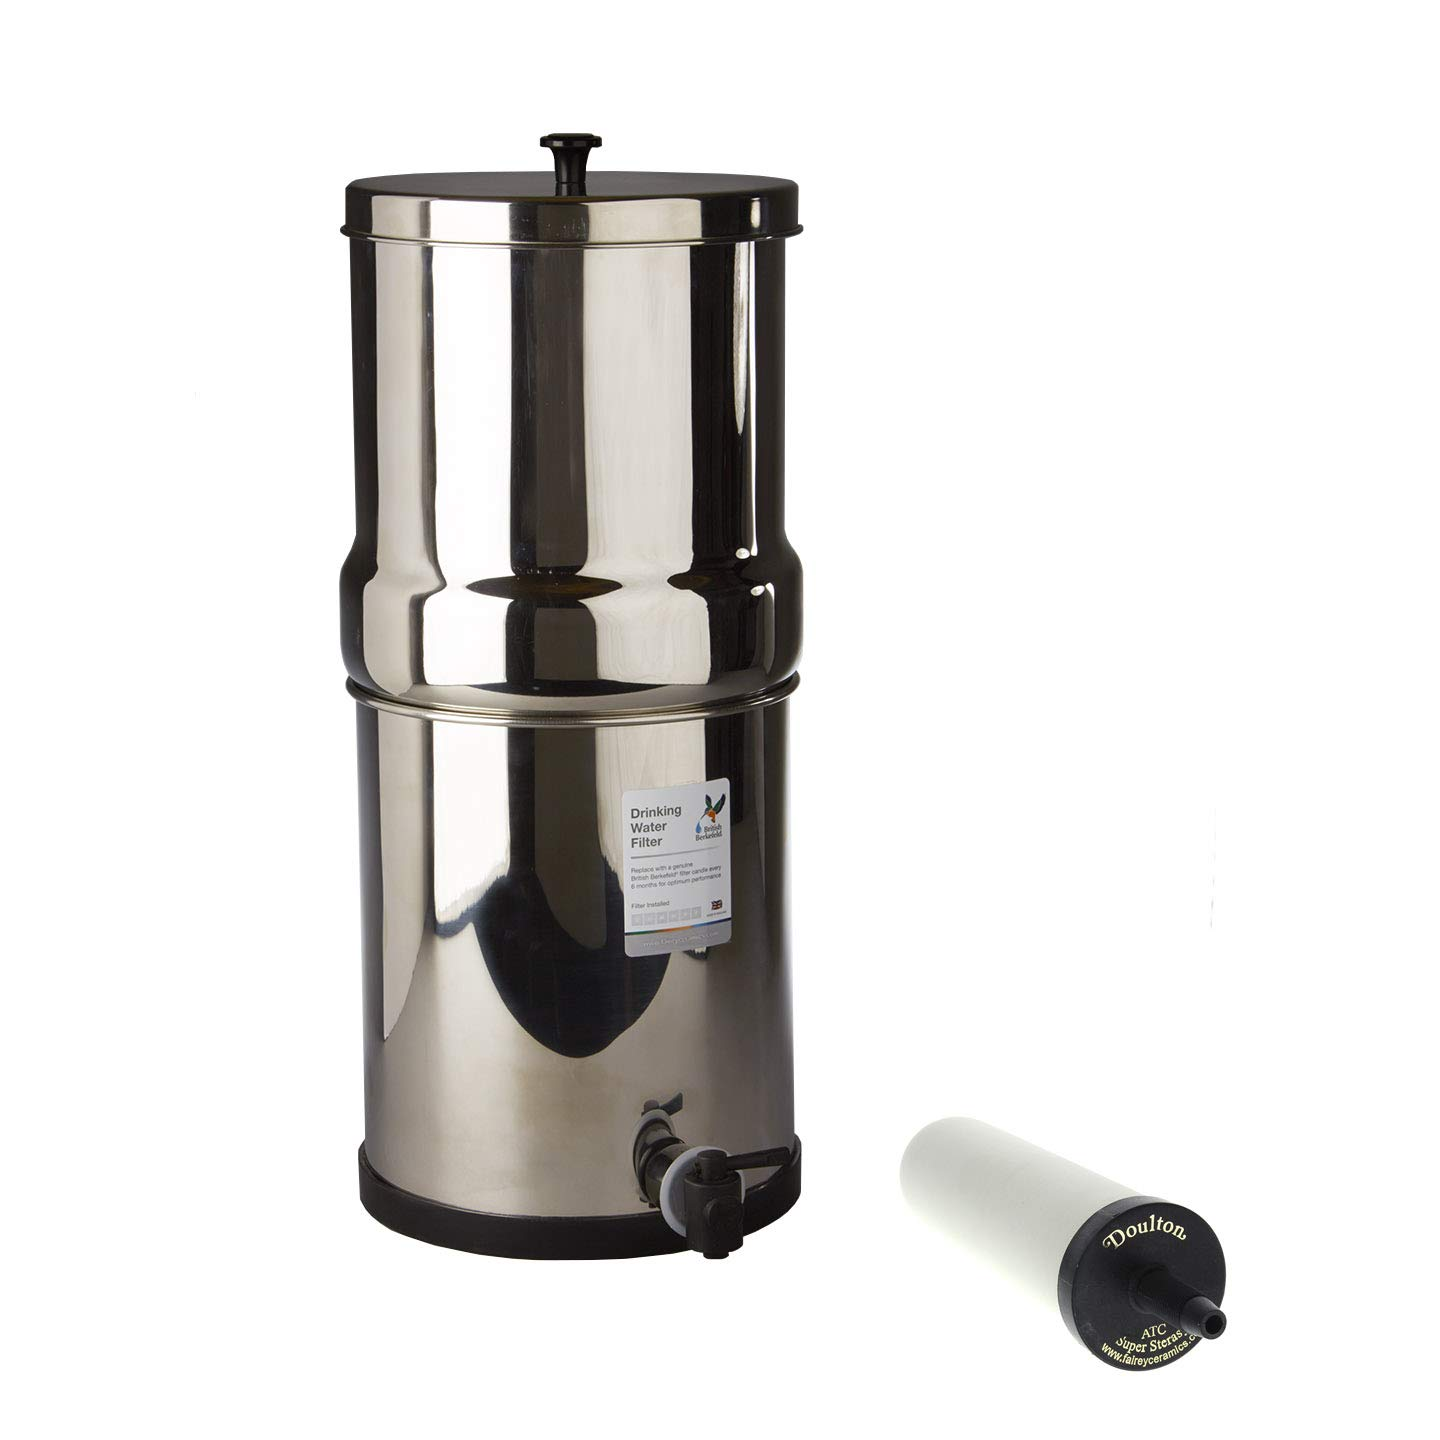 Doulton W9361123 Stainless Steel Gravity System with ATC Super Sterasyl Candle Filter